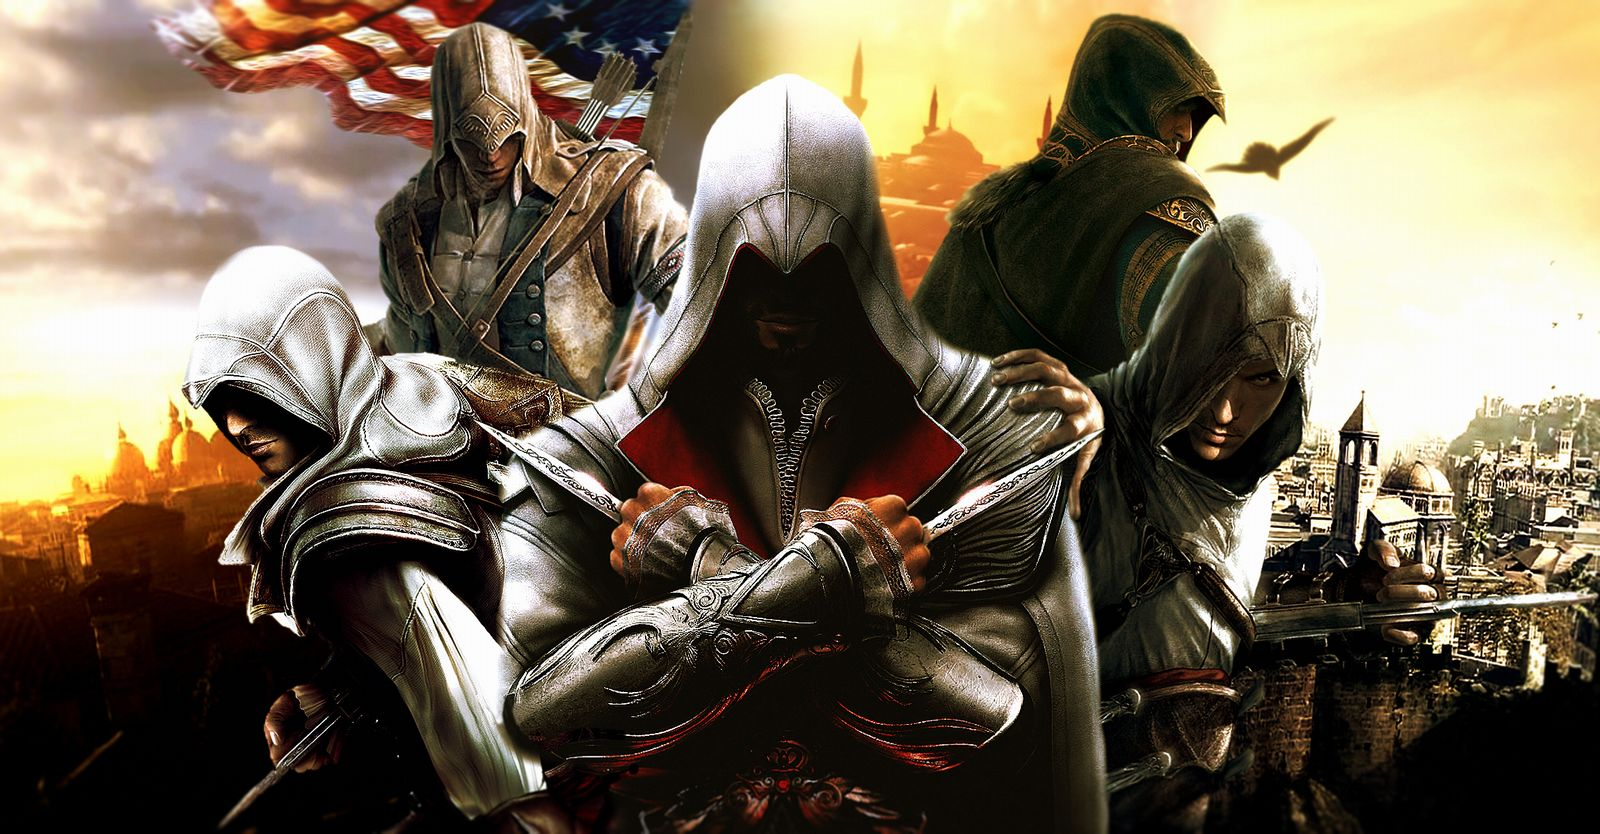 Assassin's Creed best Wallpaper